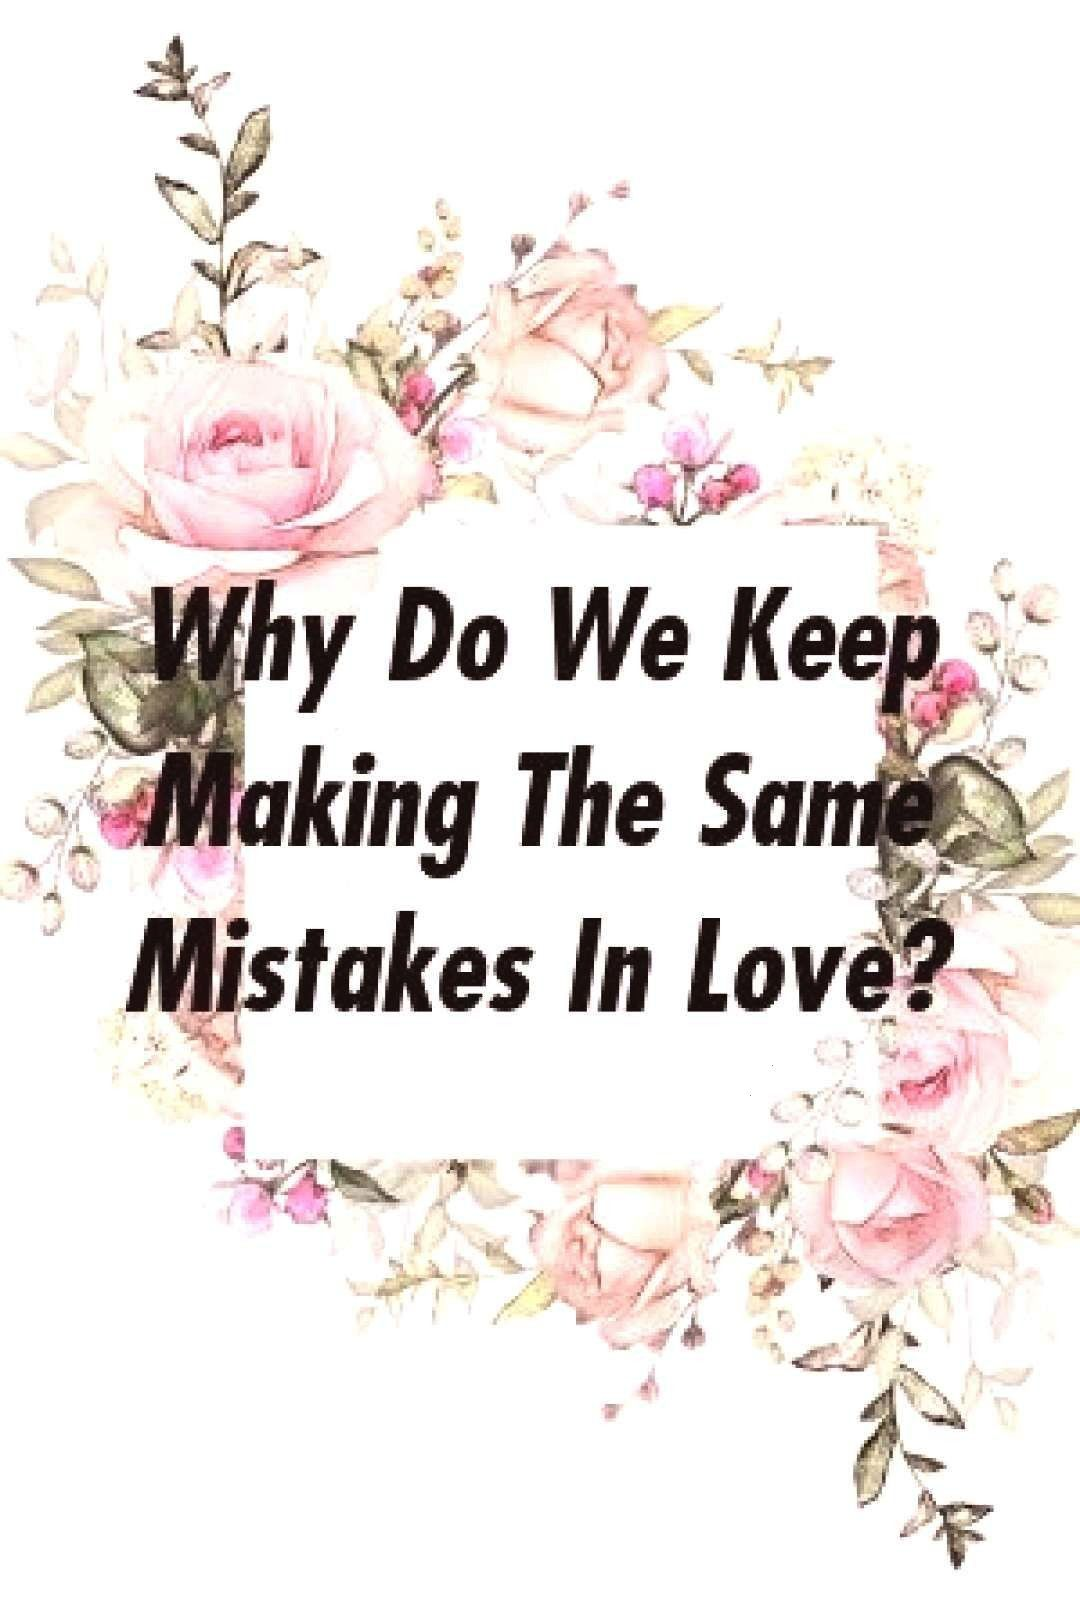 #frontrelationxyz #mistakes #marriage #problems #making #movies #same #keep #mist #love #the #why #we #in #byWhy Do We Keep Making The Same Mist...Why Do We Keep Making The Same Mist...  These Adorable Illustrations About Relationships Will Warm Your Heart by frontrelation.xyz    Therapists Reveal 3 of the Biggest Mistakes Women Make in Relationships and How to Avoid Them by frontrelation.xyz    image  Âllah Teâla bir kula hayır murad ettiğinde onu dinde fakih, dünyada zahid kılar ve ona ...